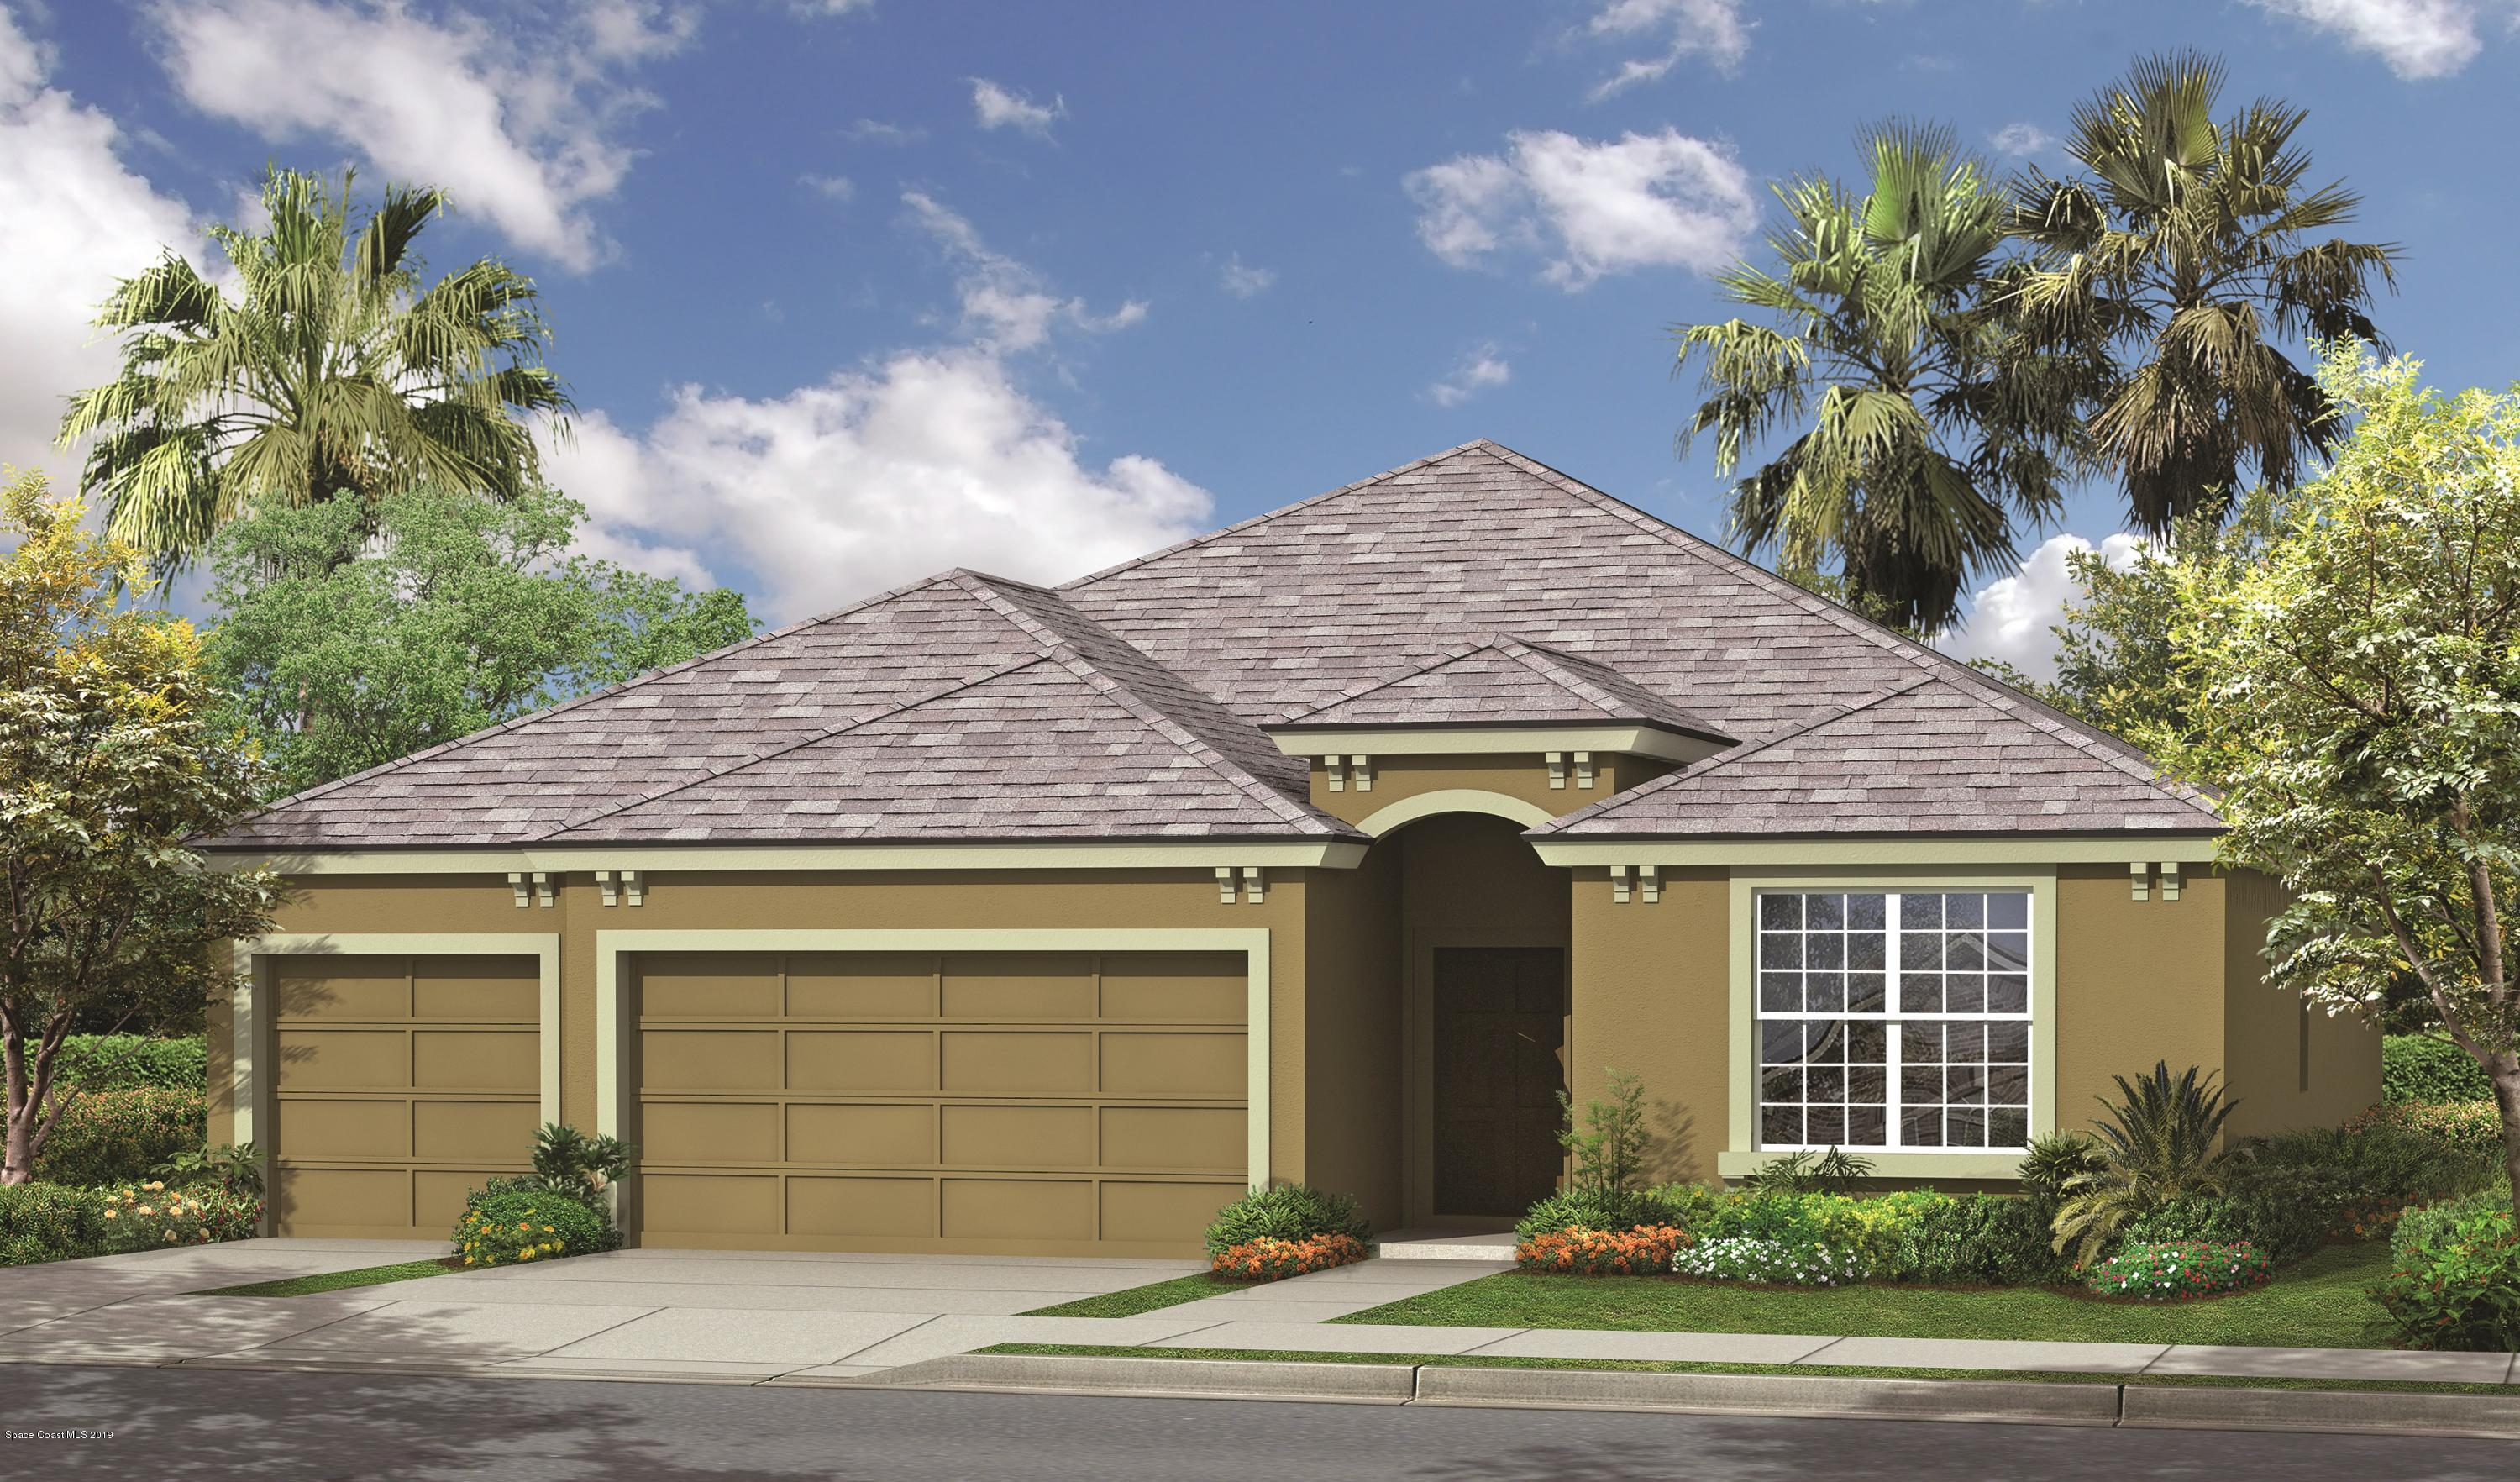 Single Family Homes for Sale at 628 Stonebriar Palm Bay, Florida 32909 United States